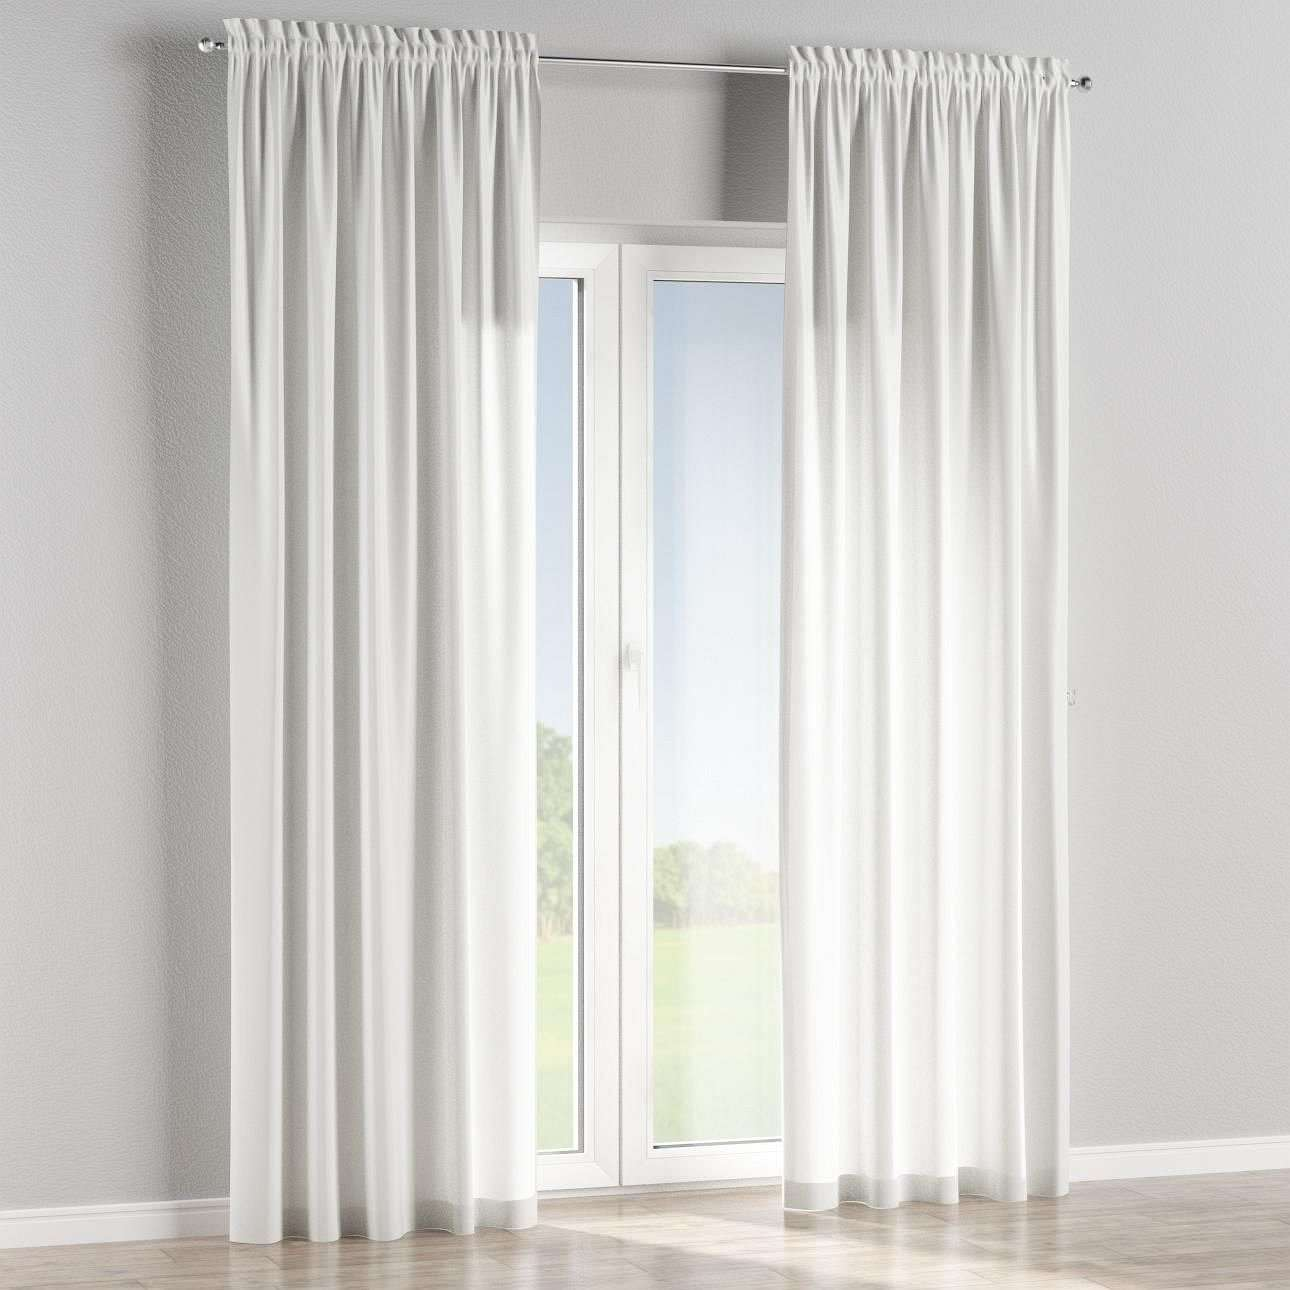 Slot and frill curtains in collection Rustica, fabric: 140-58